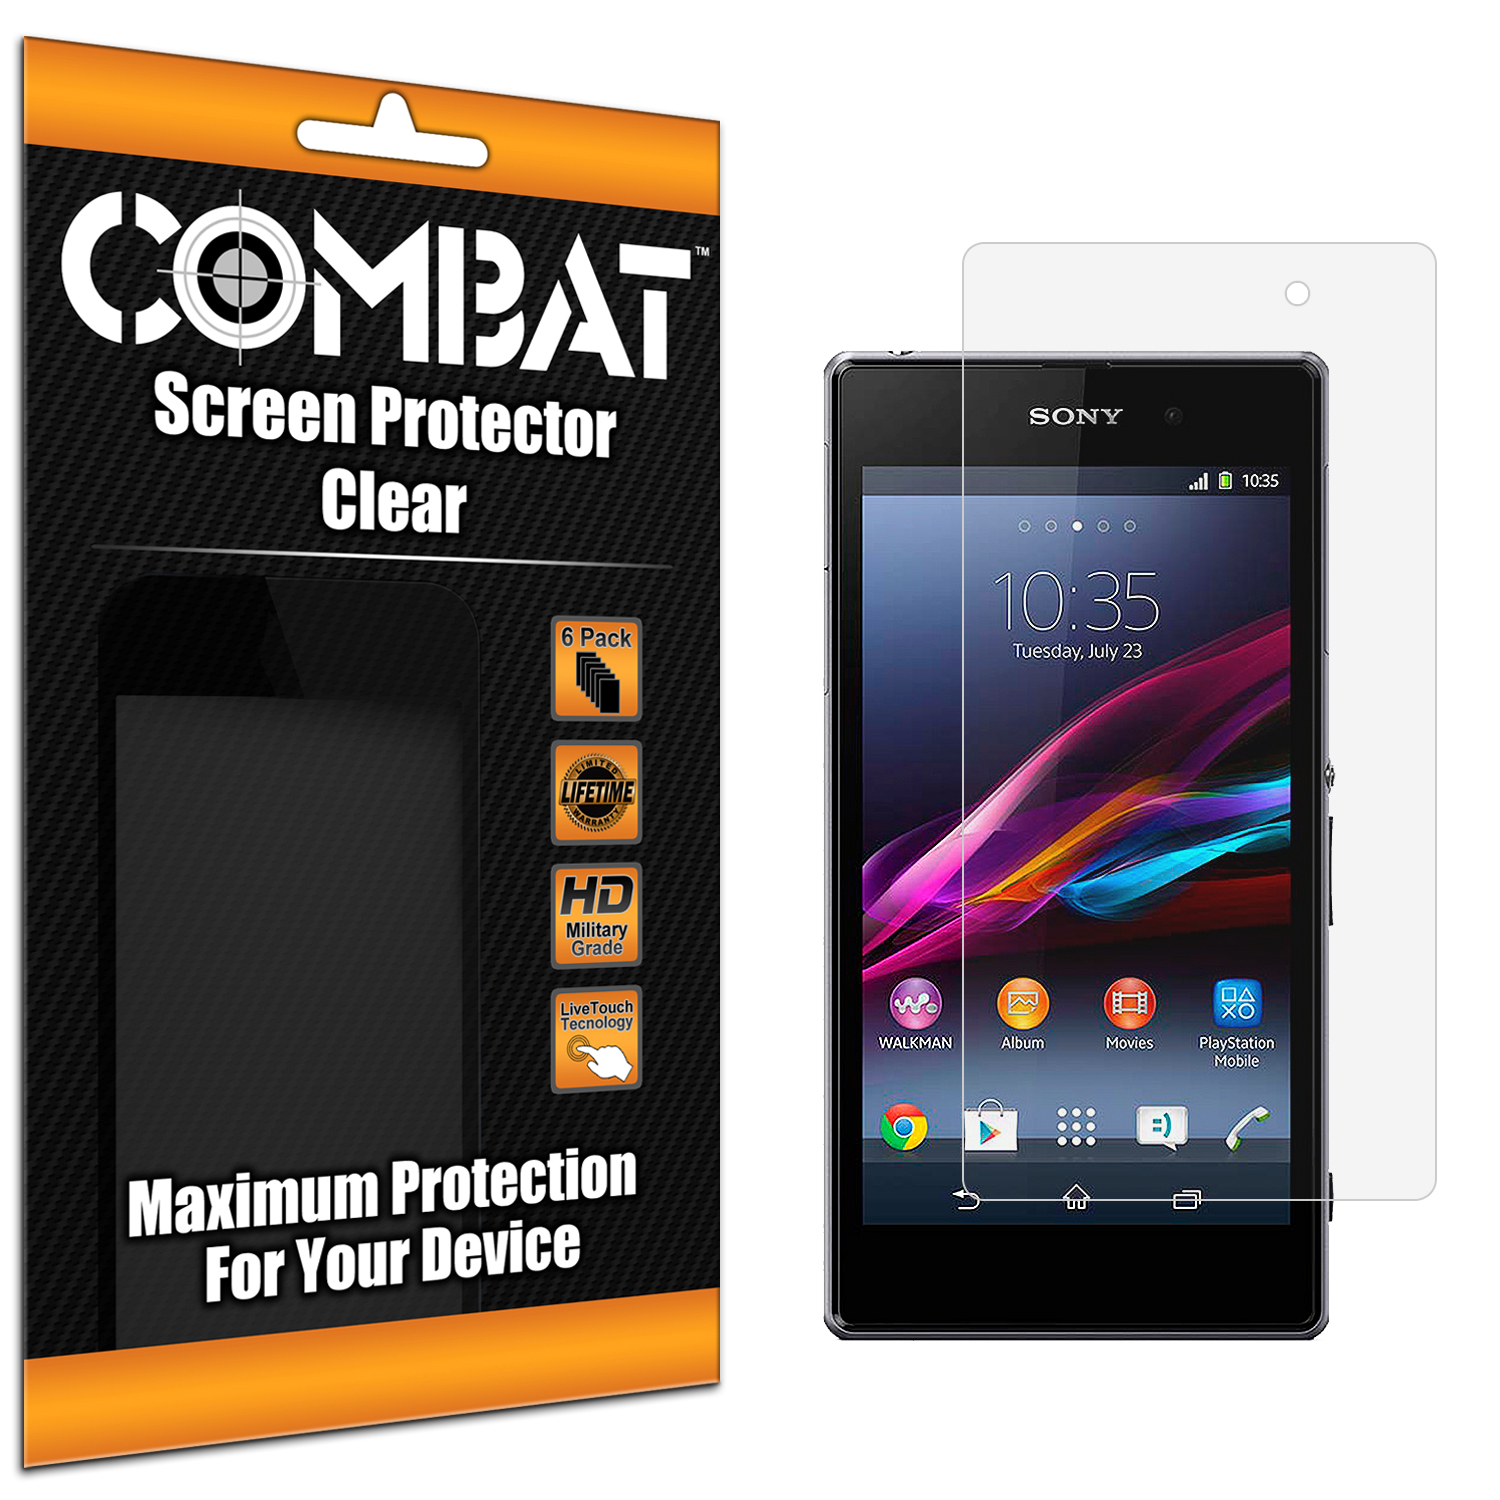 Sony Xperia Z1 Combat 6 Pack HD Clear Screen Protector